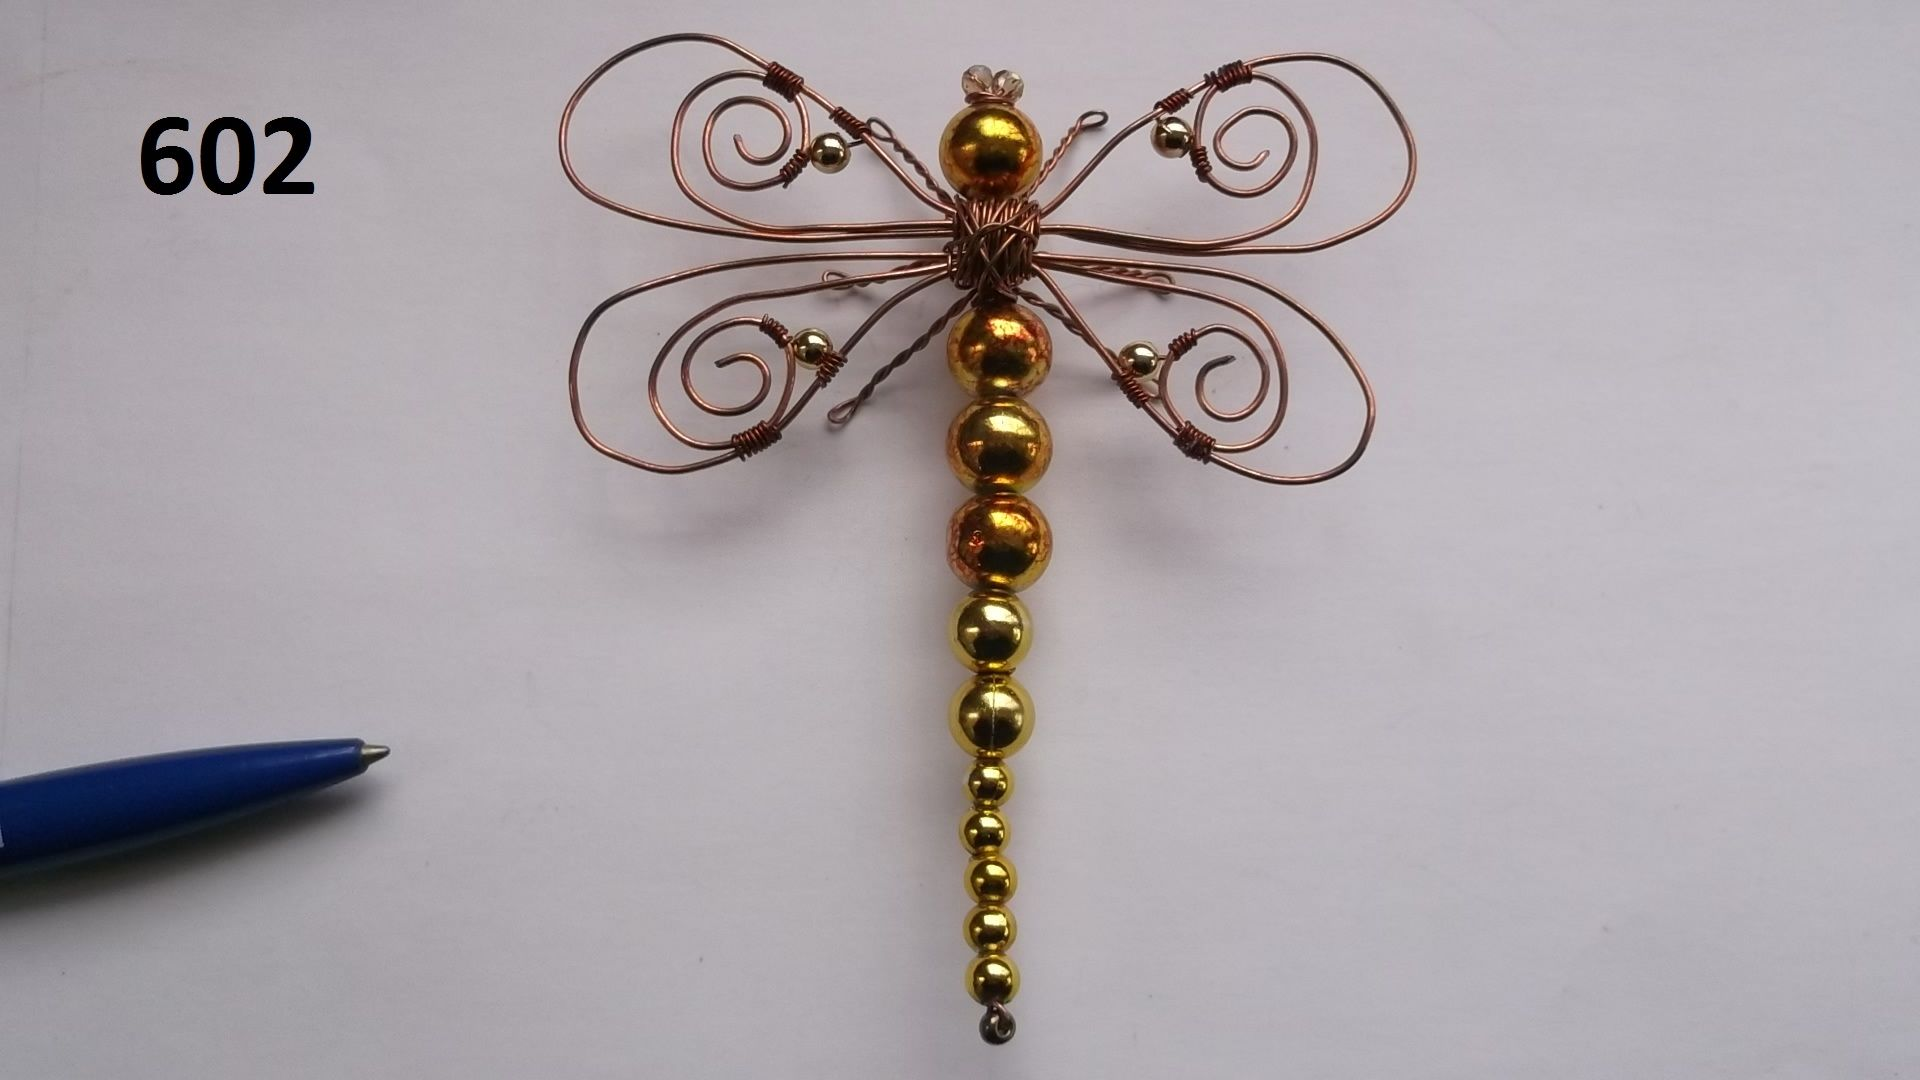 No. 602 - Dragonfly   Bugs made from wire & beads   Pinterest   Tree ...